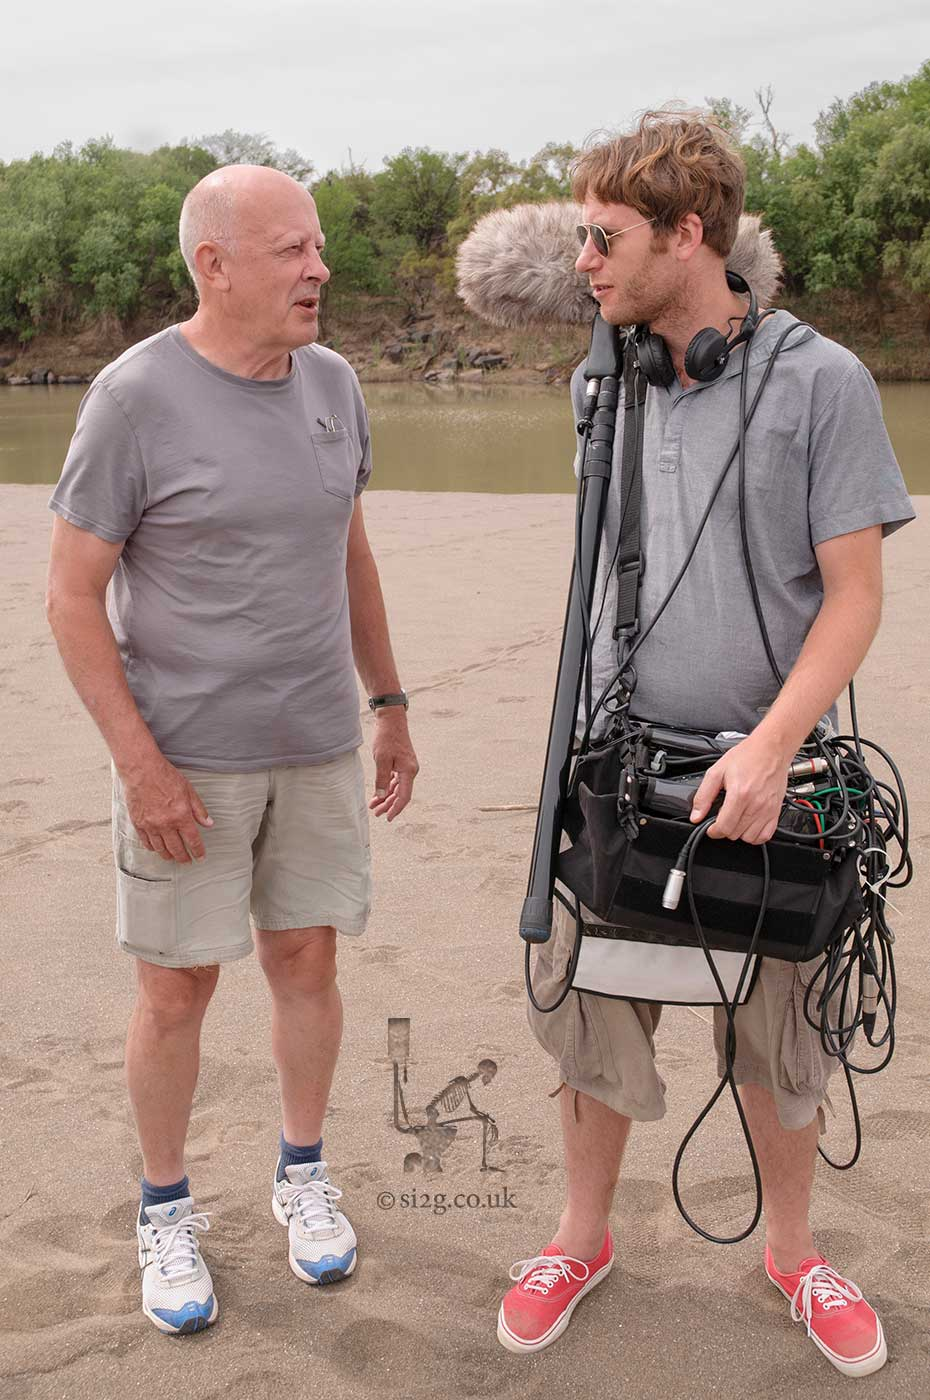 Crew Jokes - Colin the sound recordist listens to the same joke Rob has told for the hundredth time.